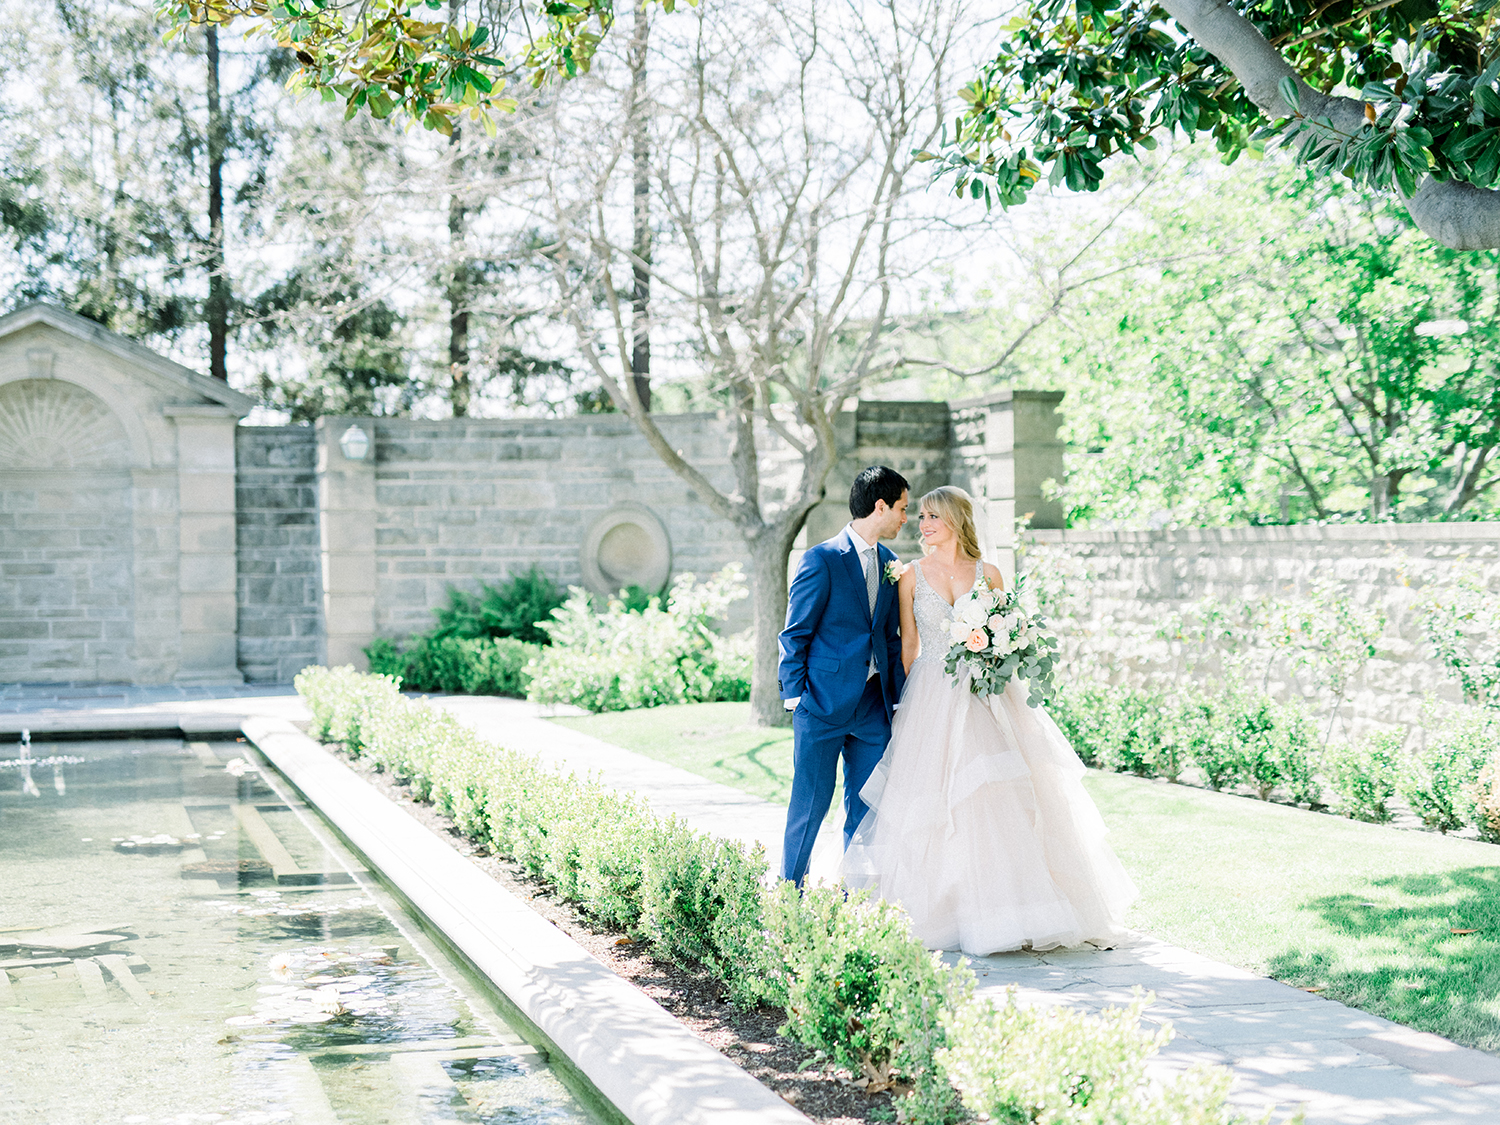 Romantic and Classic Greystone Mansion Wedding by Lucky Day Events Co. x Jordan Galindo Photography